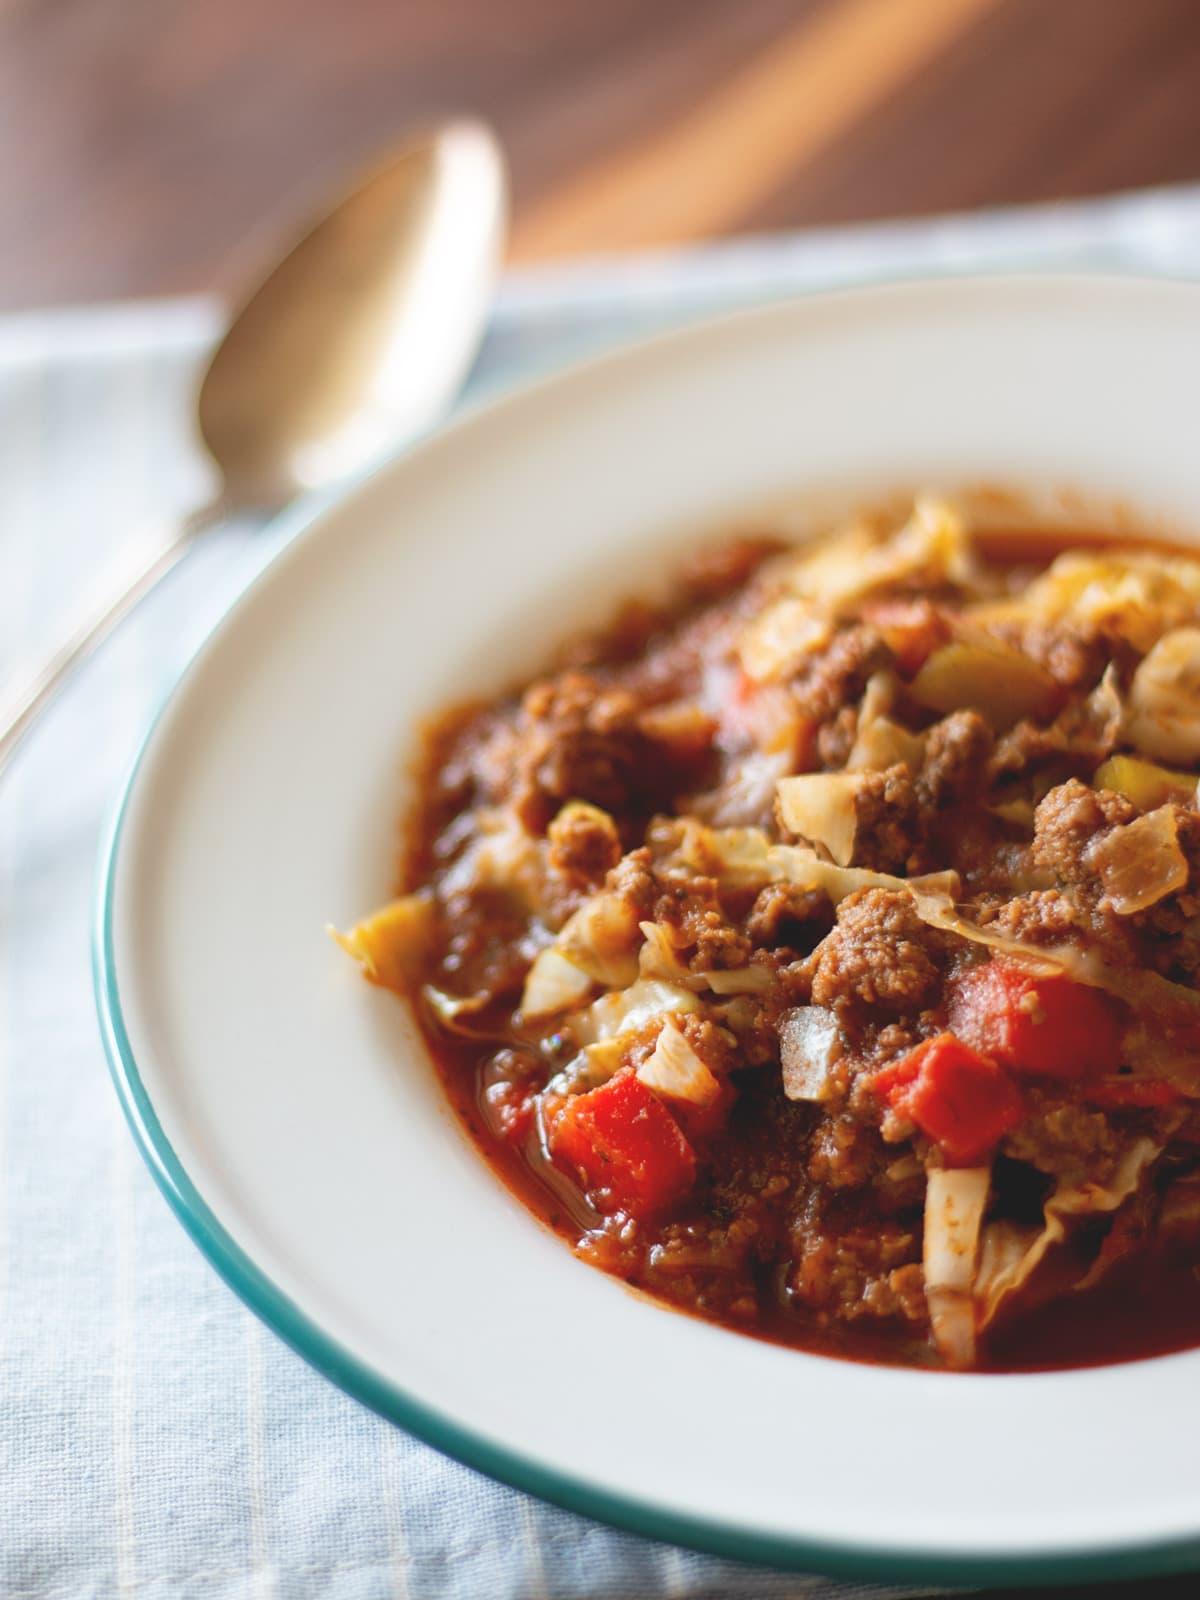 This easy Cabbage Roll Soup has all of the flavor of cabbage rolls, but no leaf folding needed!